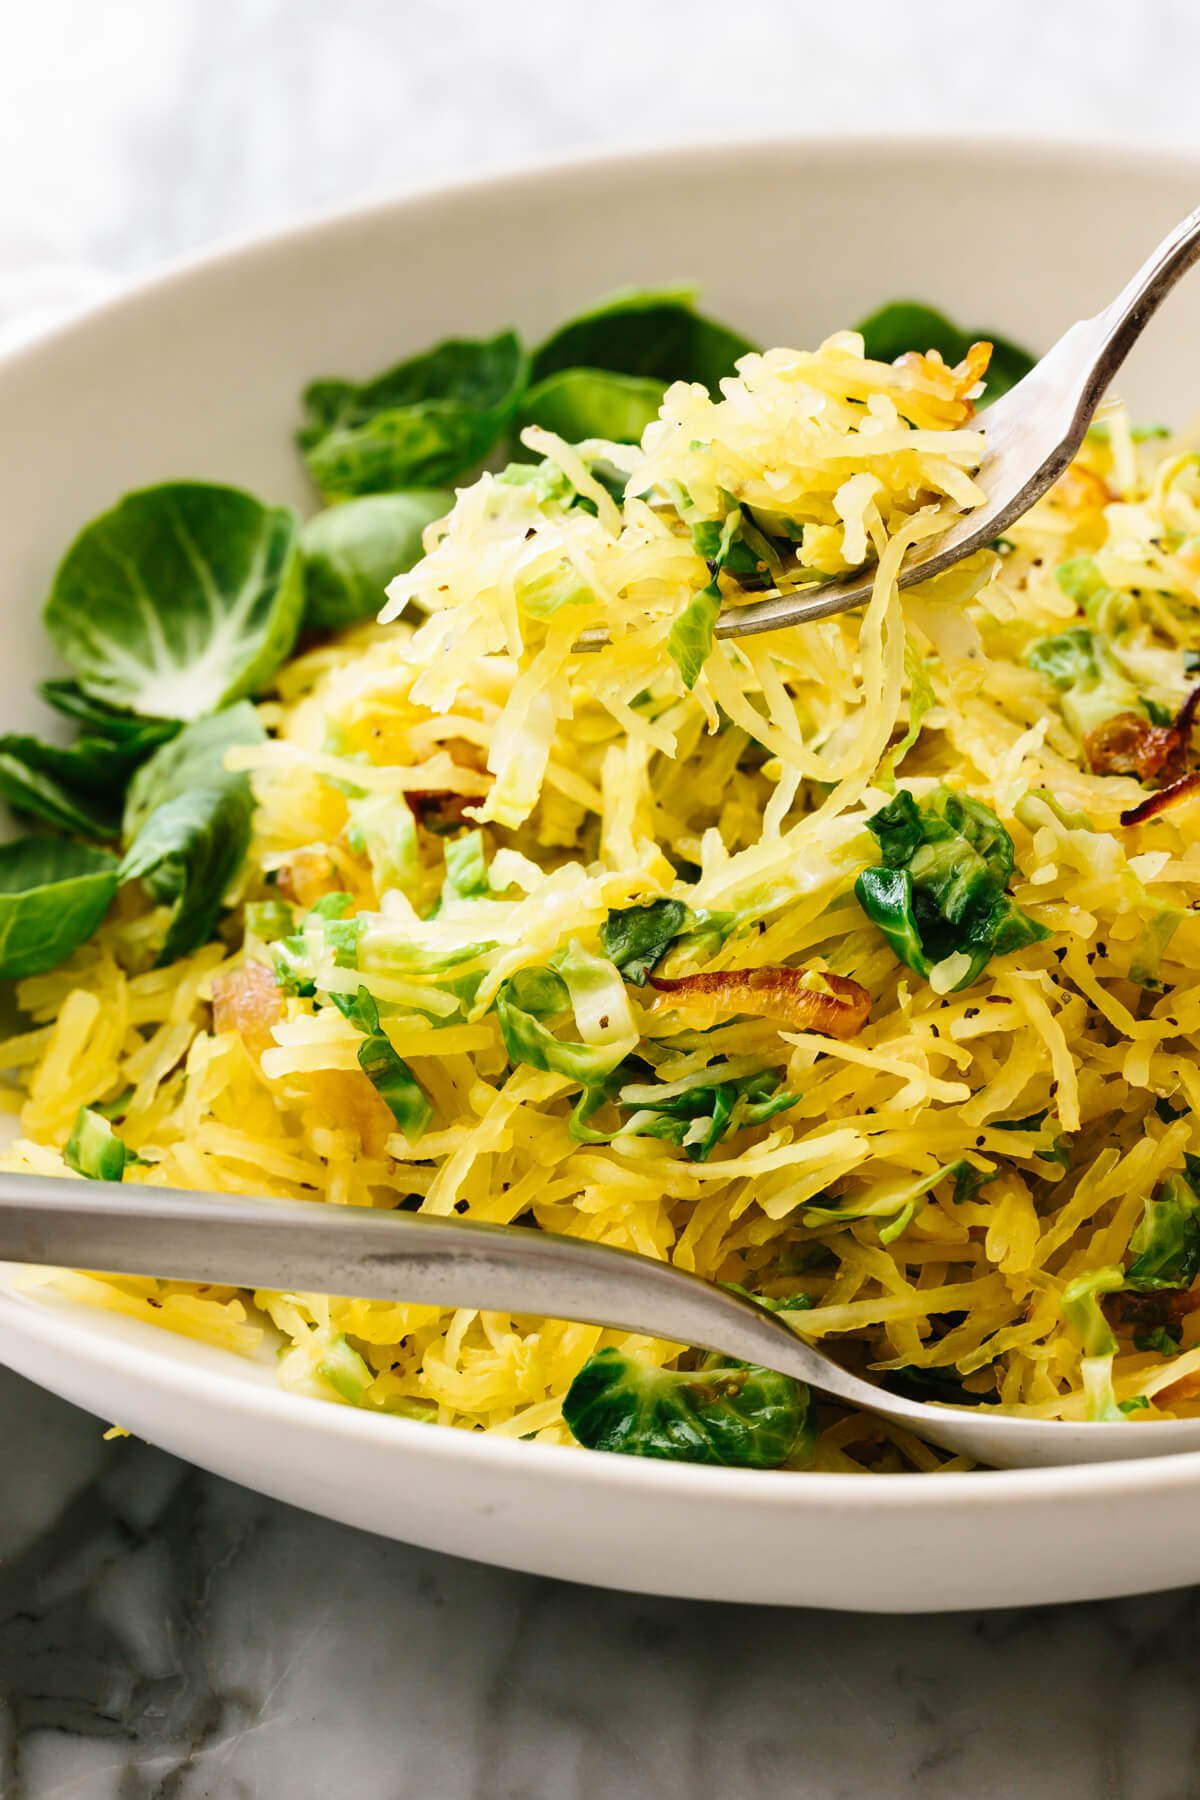 A bowl of spaghetti squash, Brussels sprouts, and crispy shallots